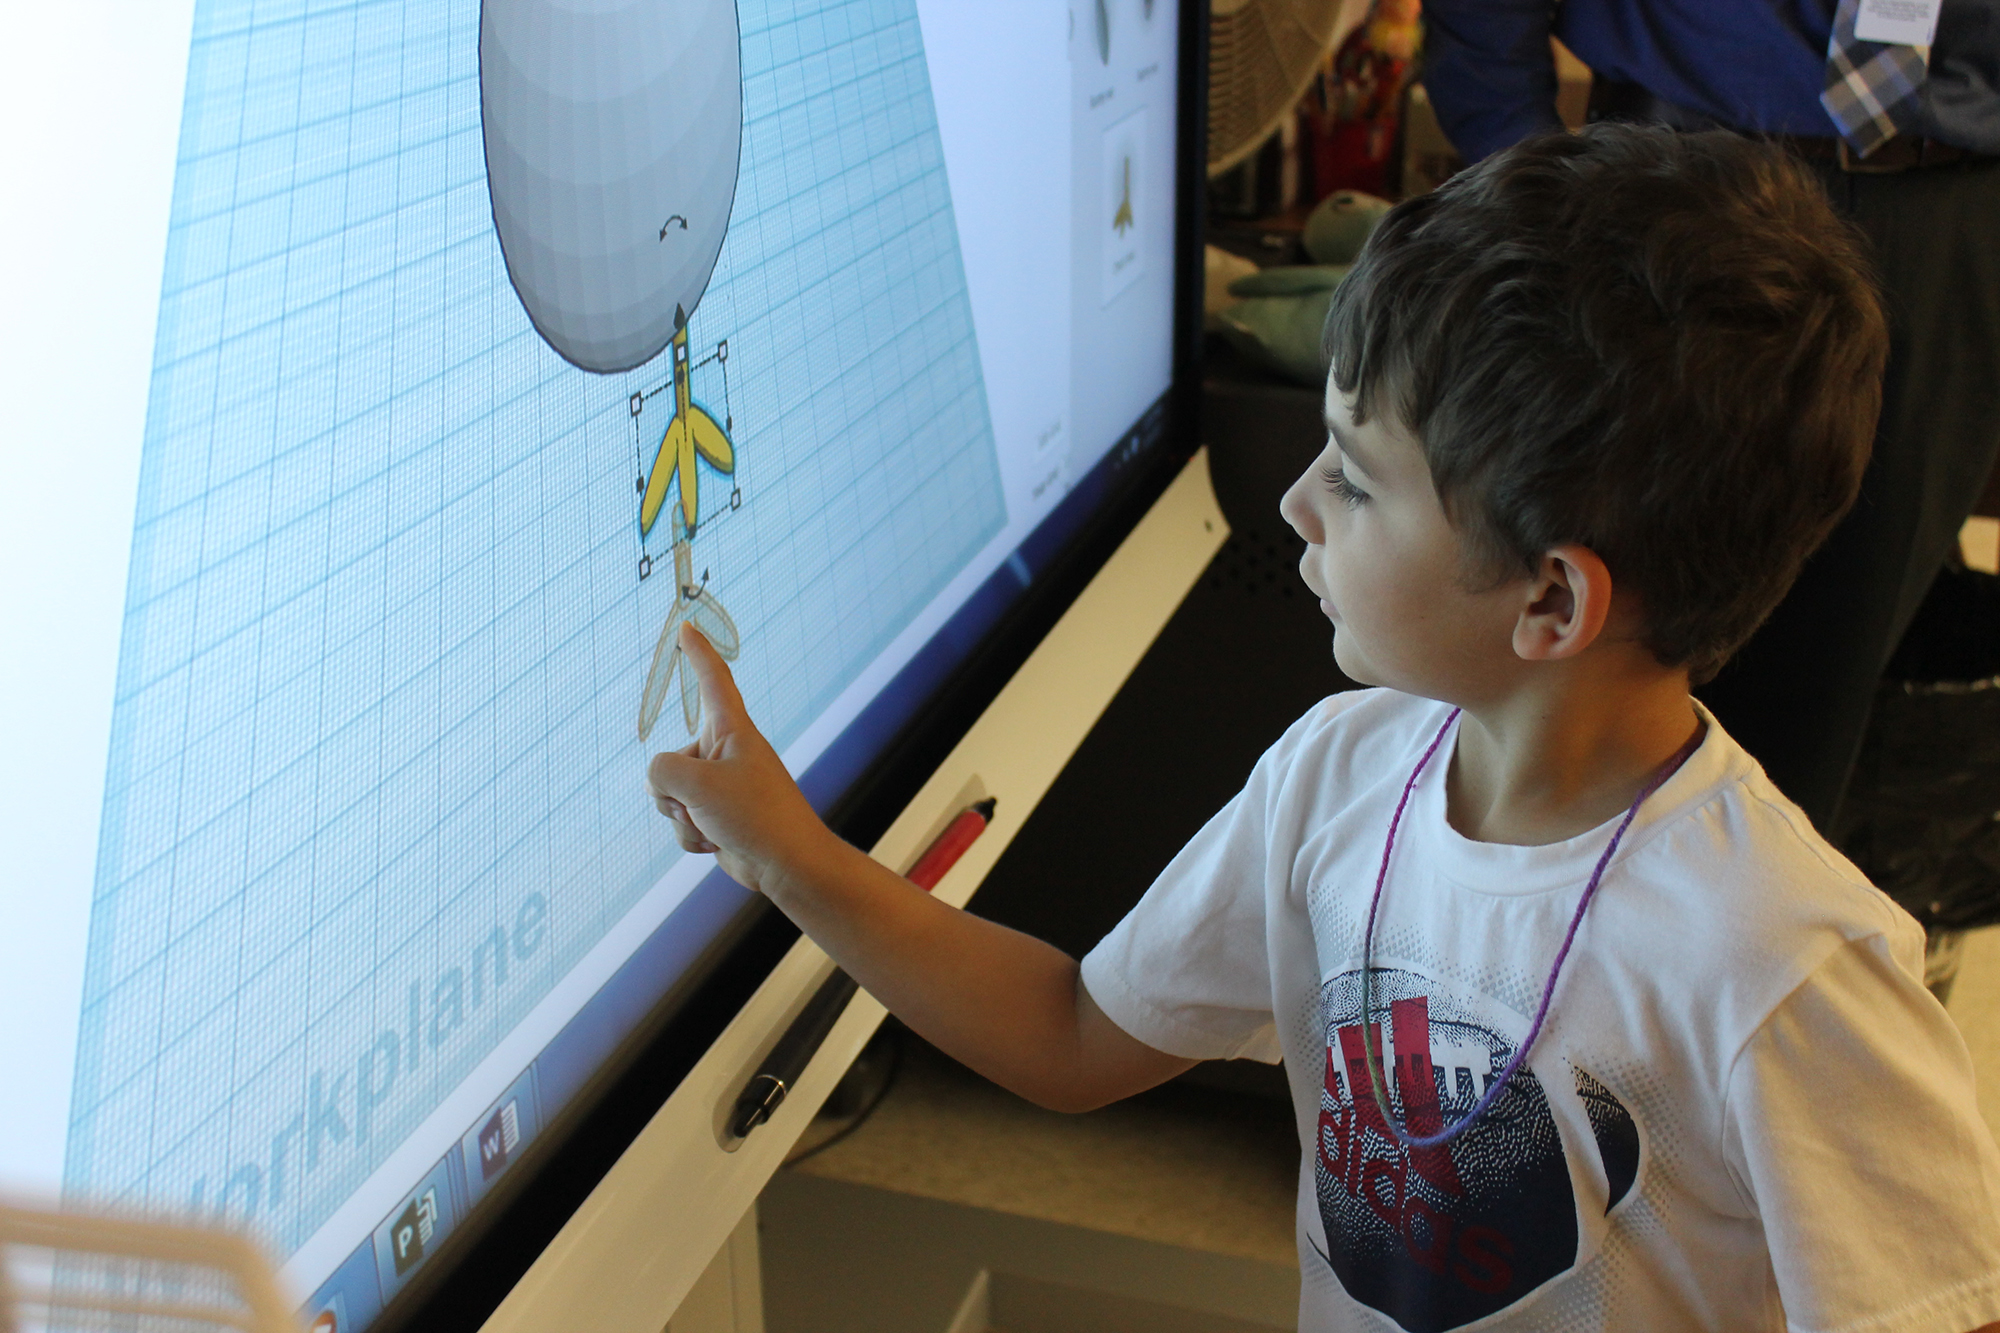 Ostrander Elementary School Kindergarten student designs a project.